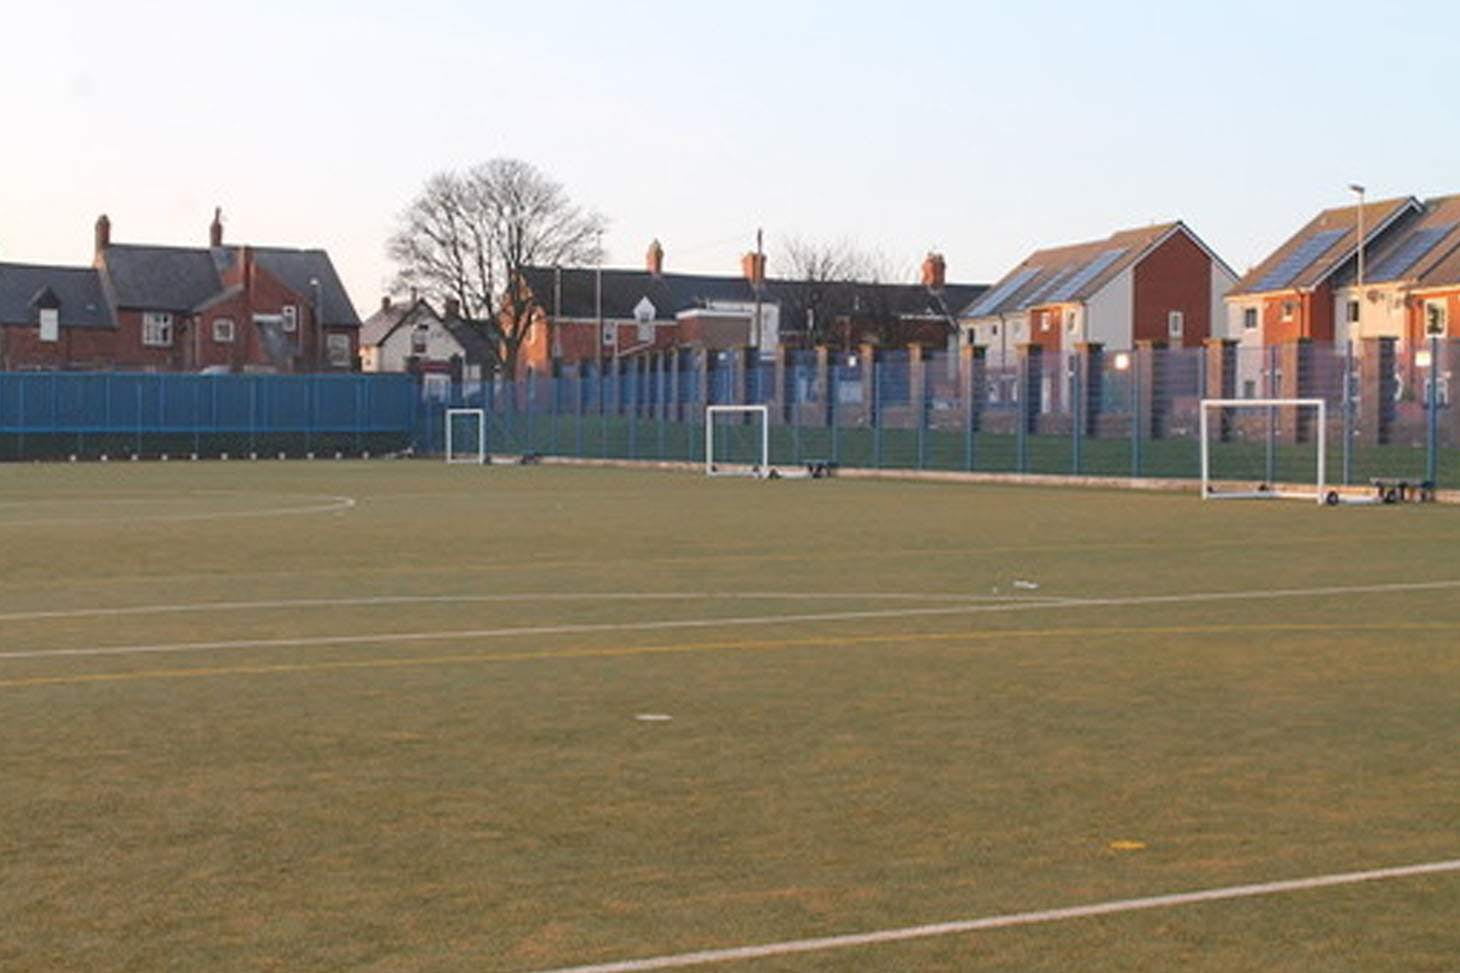 Whitburn C of E Academy Training pitch   Sand-based Astroturf rugby pitch